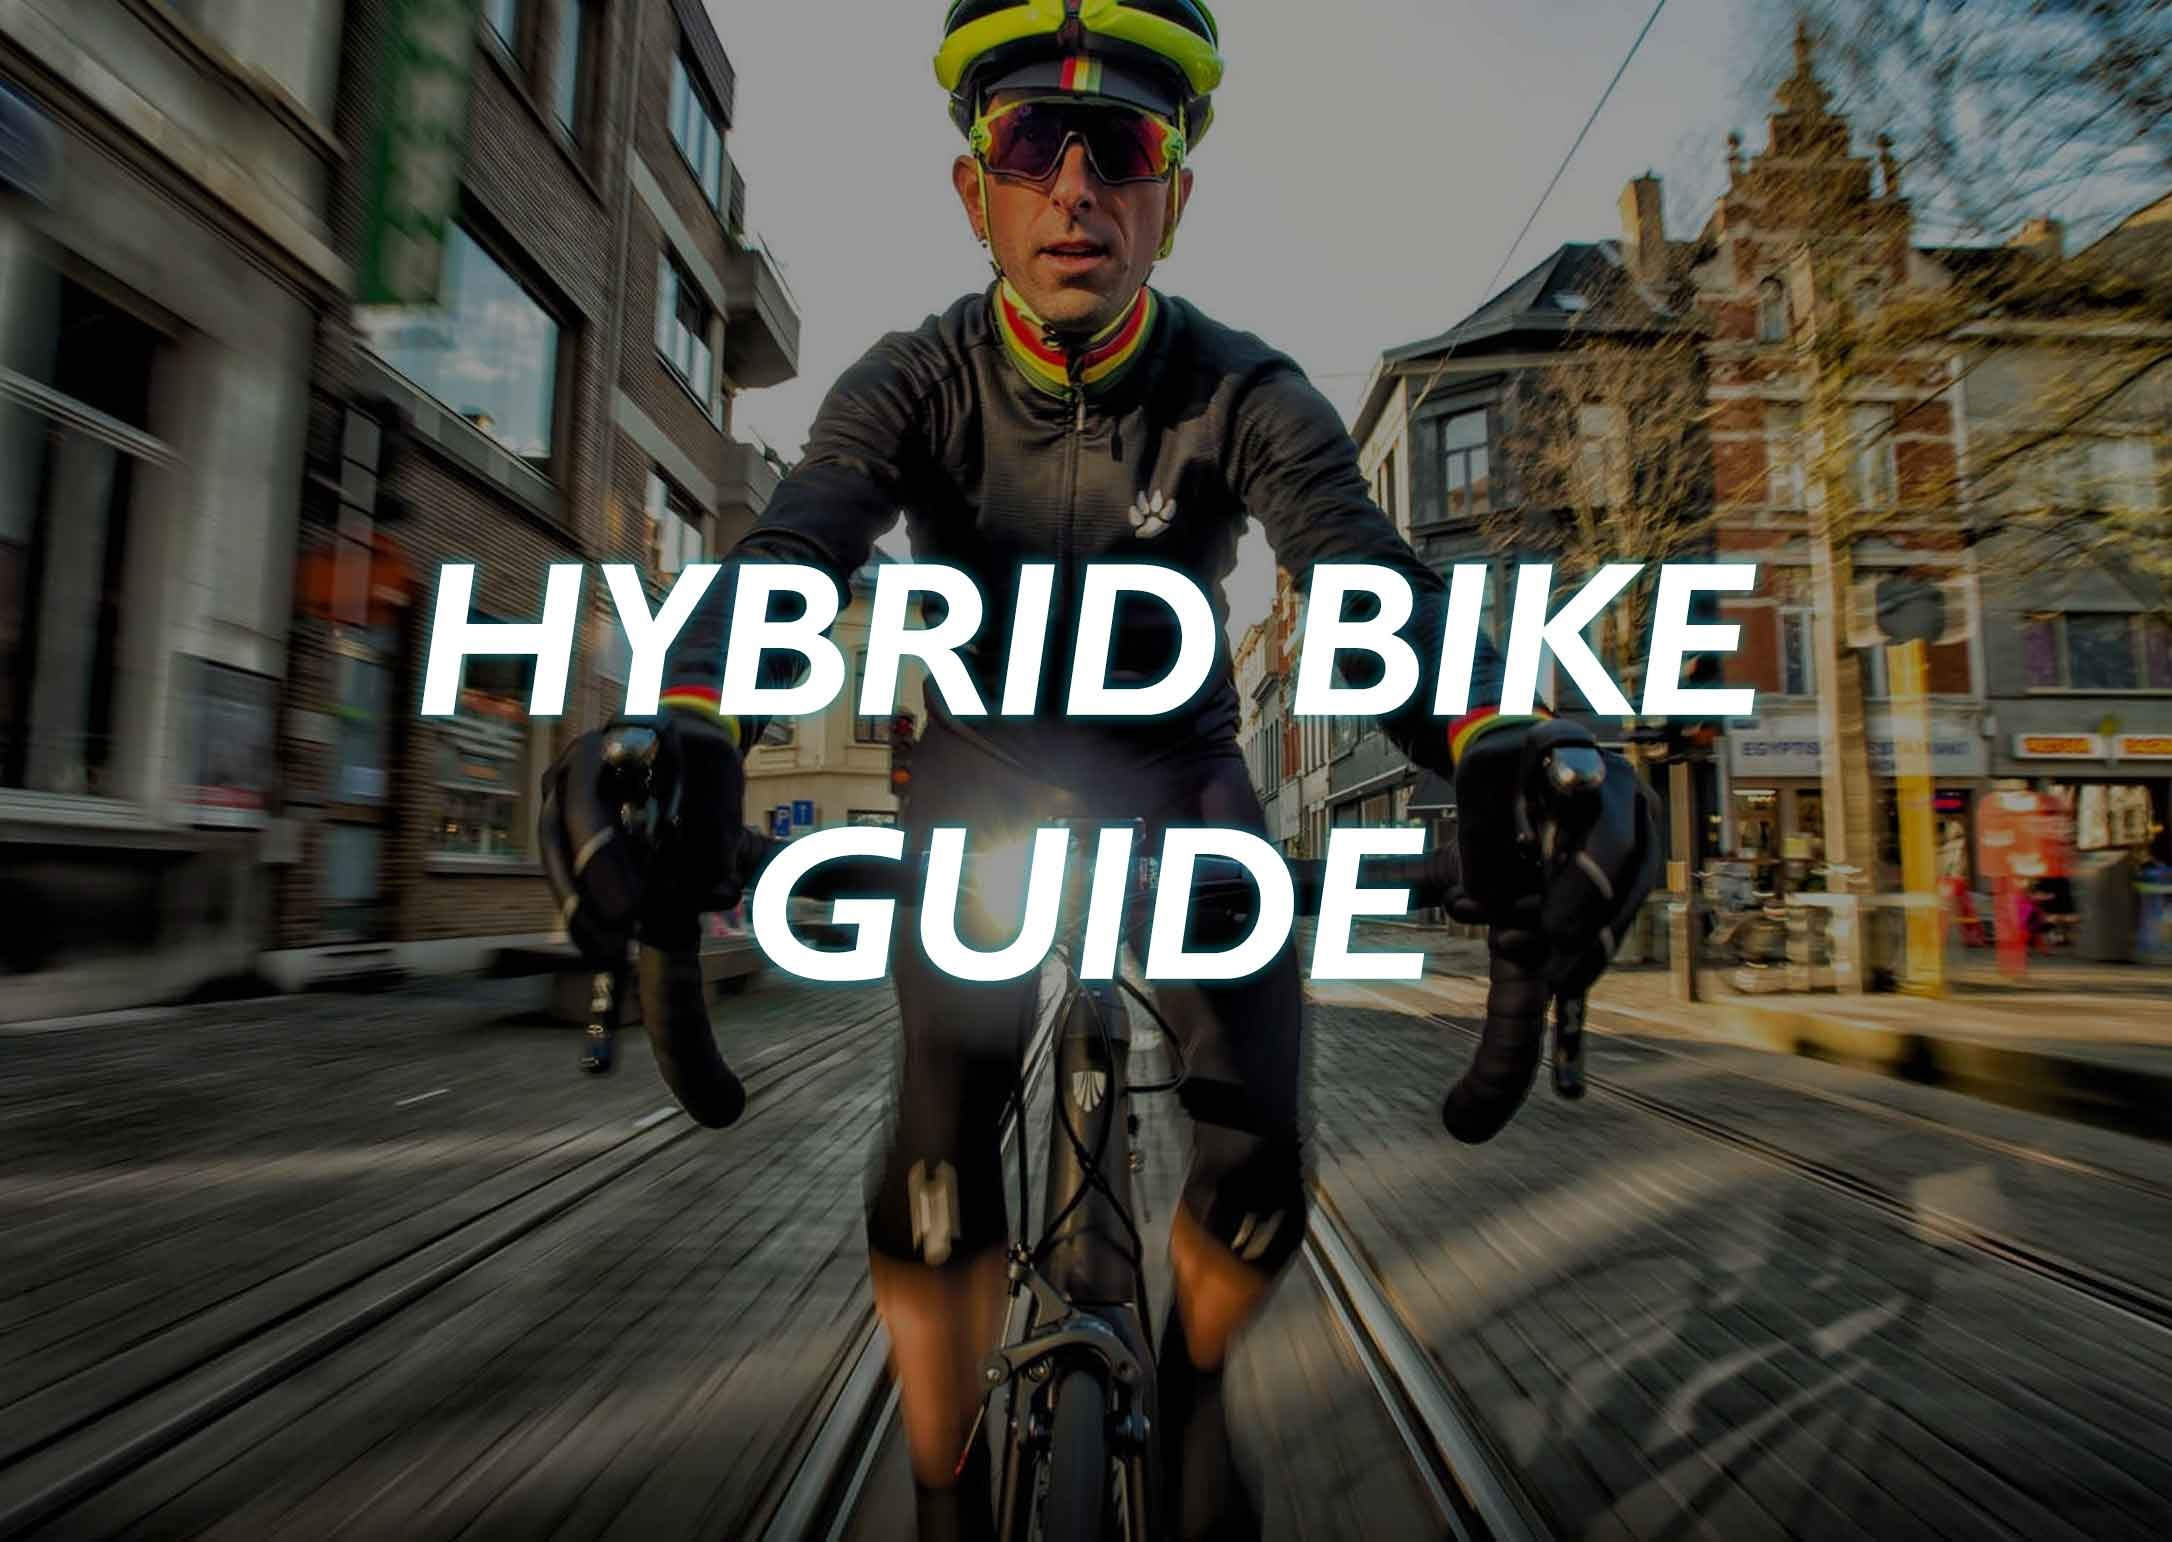 hybrid-bike-guide-tile